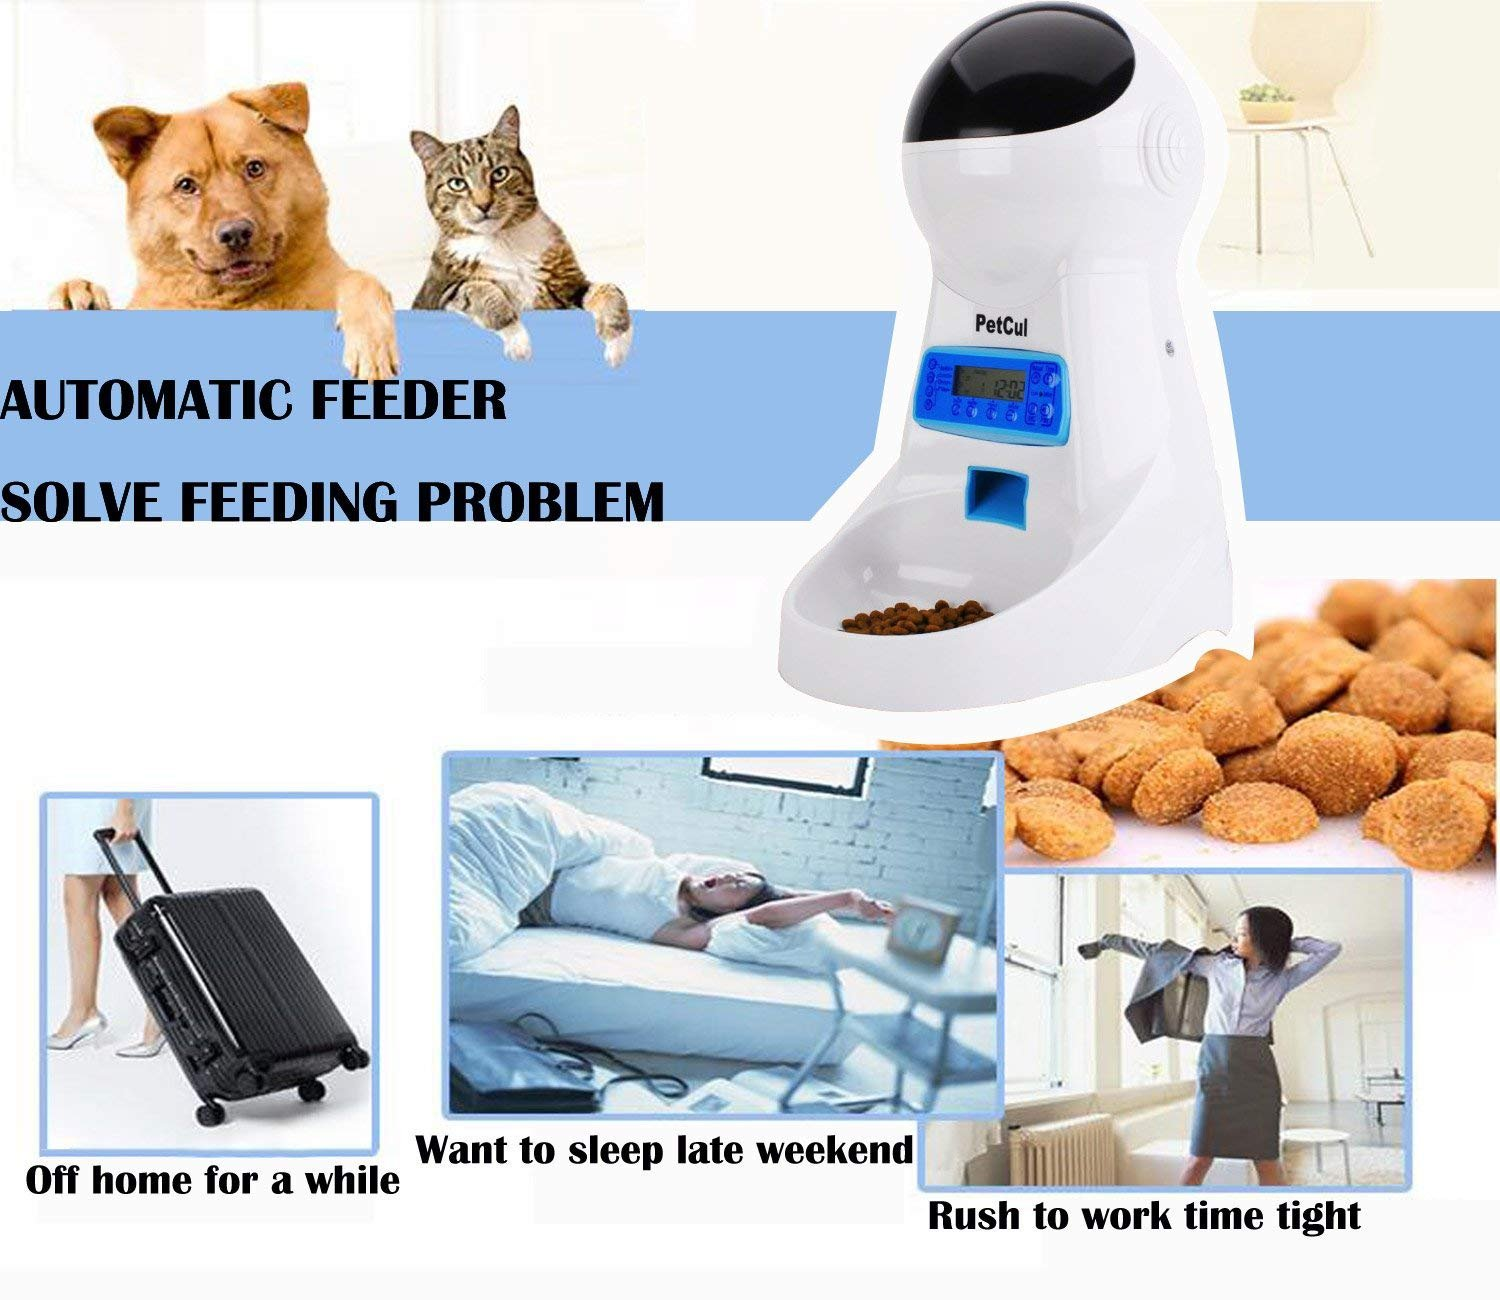 PetCul Automatic Cat Feeder 3L Pet Food Dispenser Feeder for Medium & Large Cat Dog——4 Meal, Voice Recorder & Timer Programmable, Portion Control 5